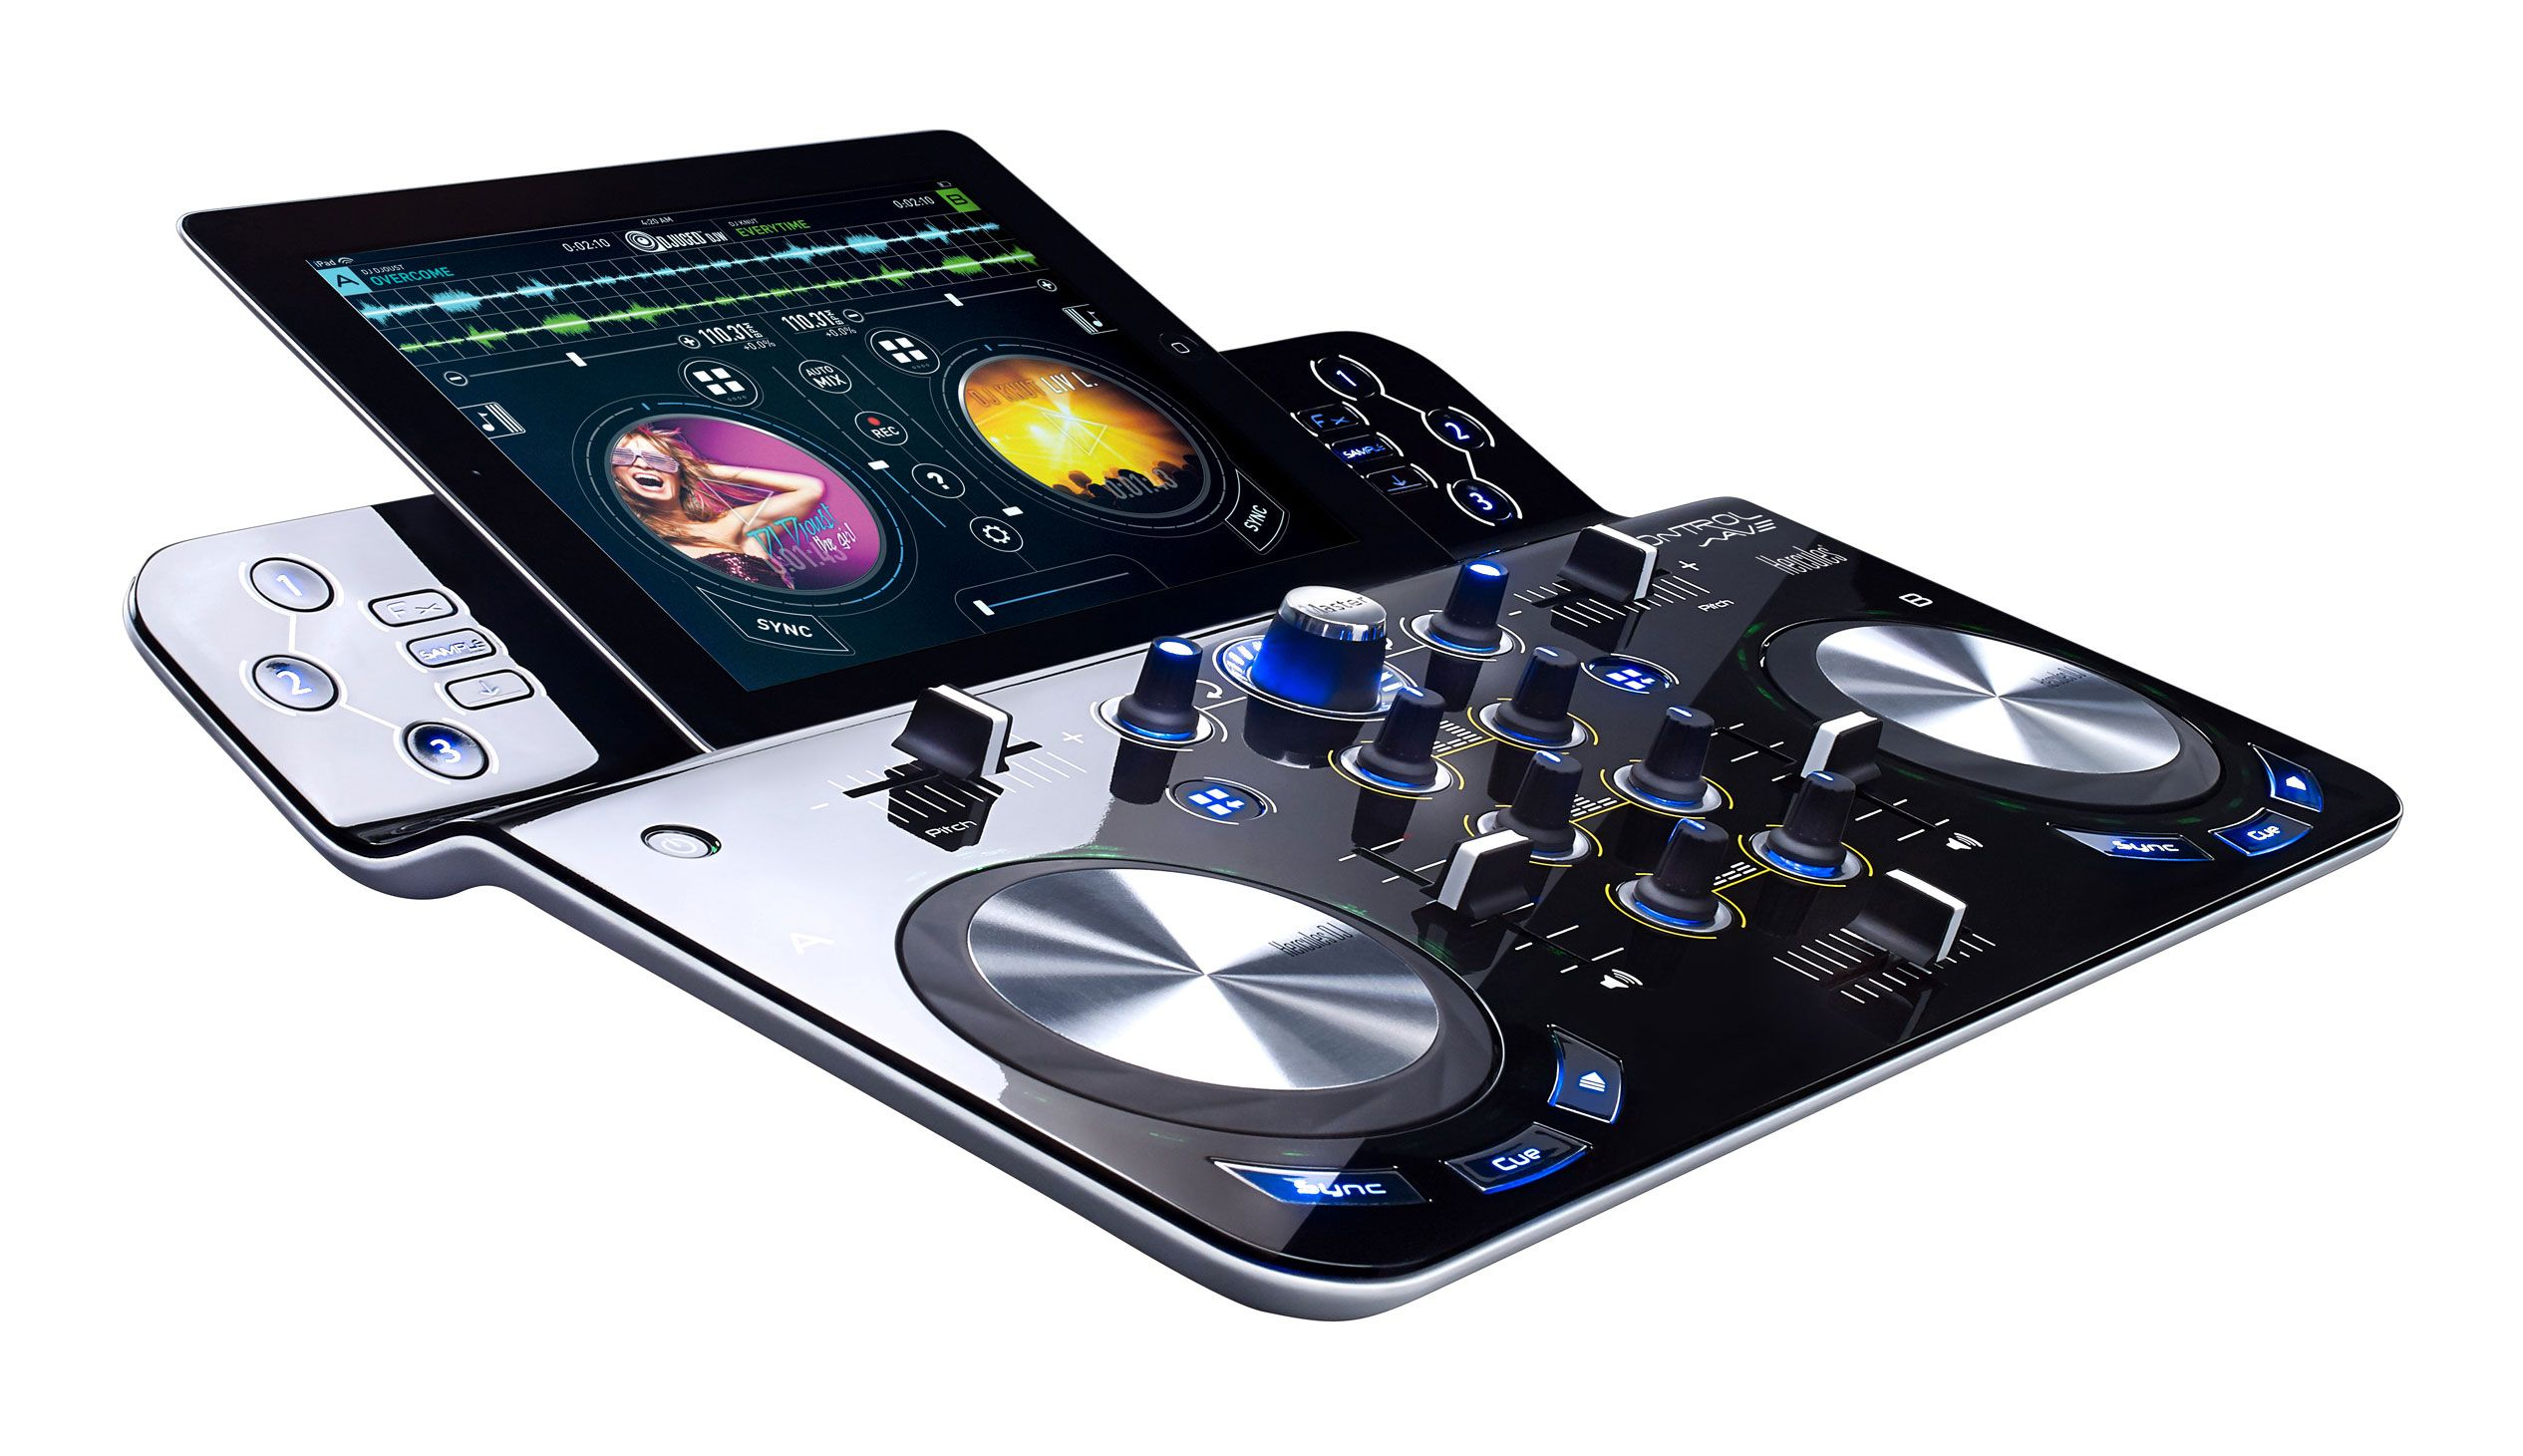 Mesa De Dj Online Ipad Goes Wireless With Hercules Djcontrolwave My Dj Life Dj